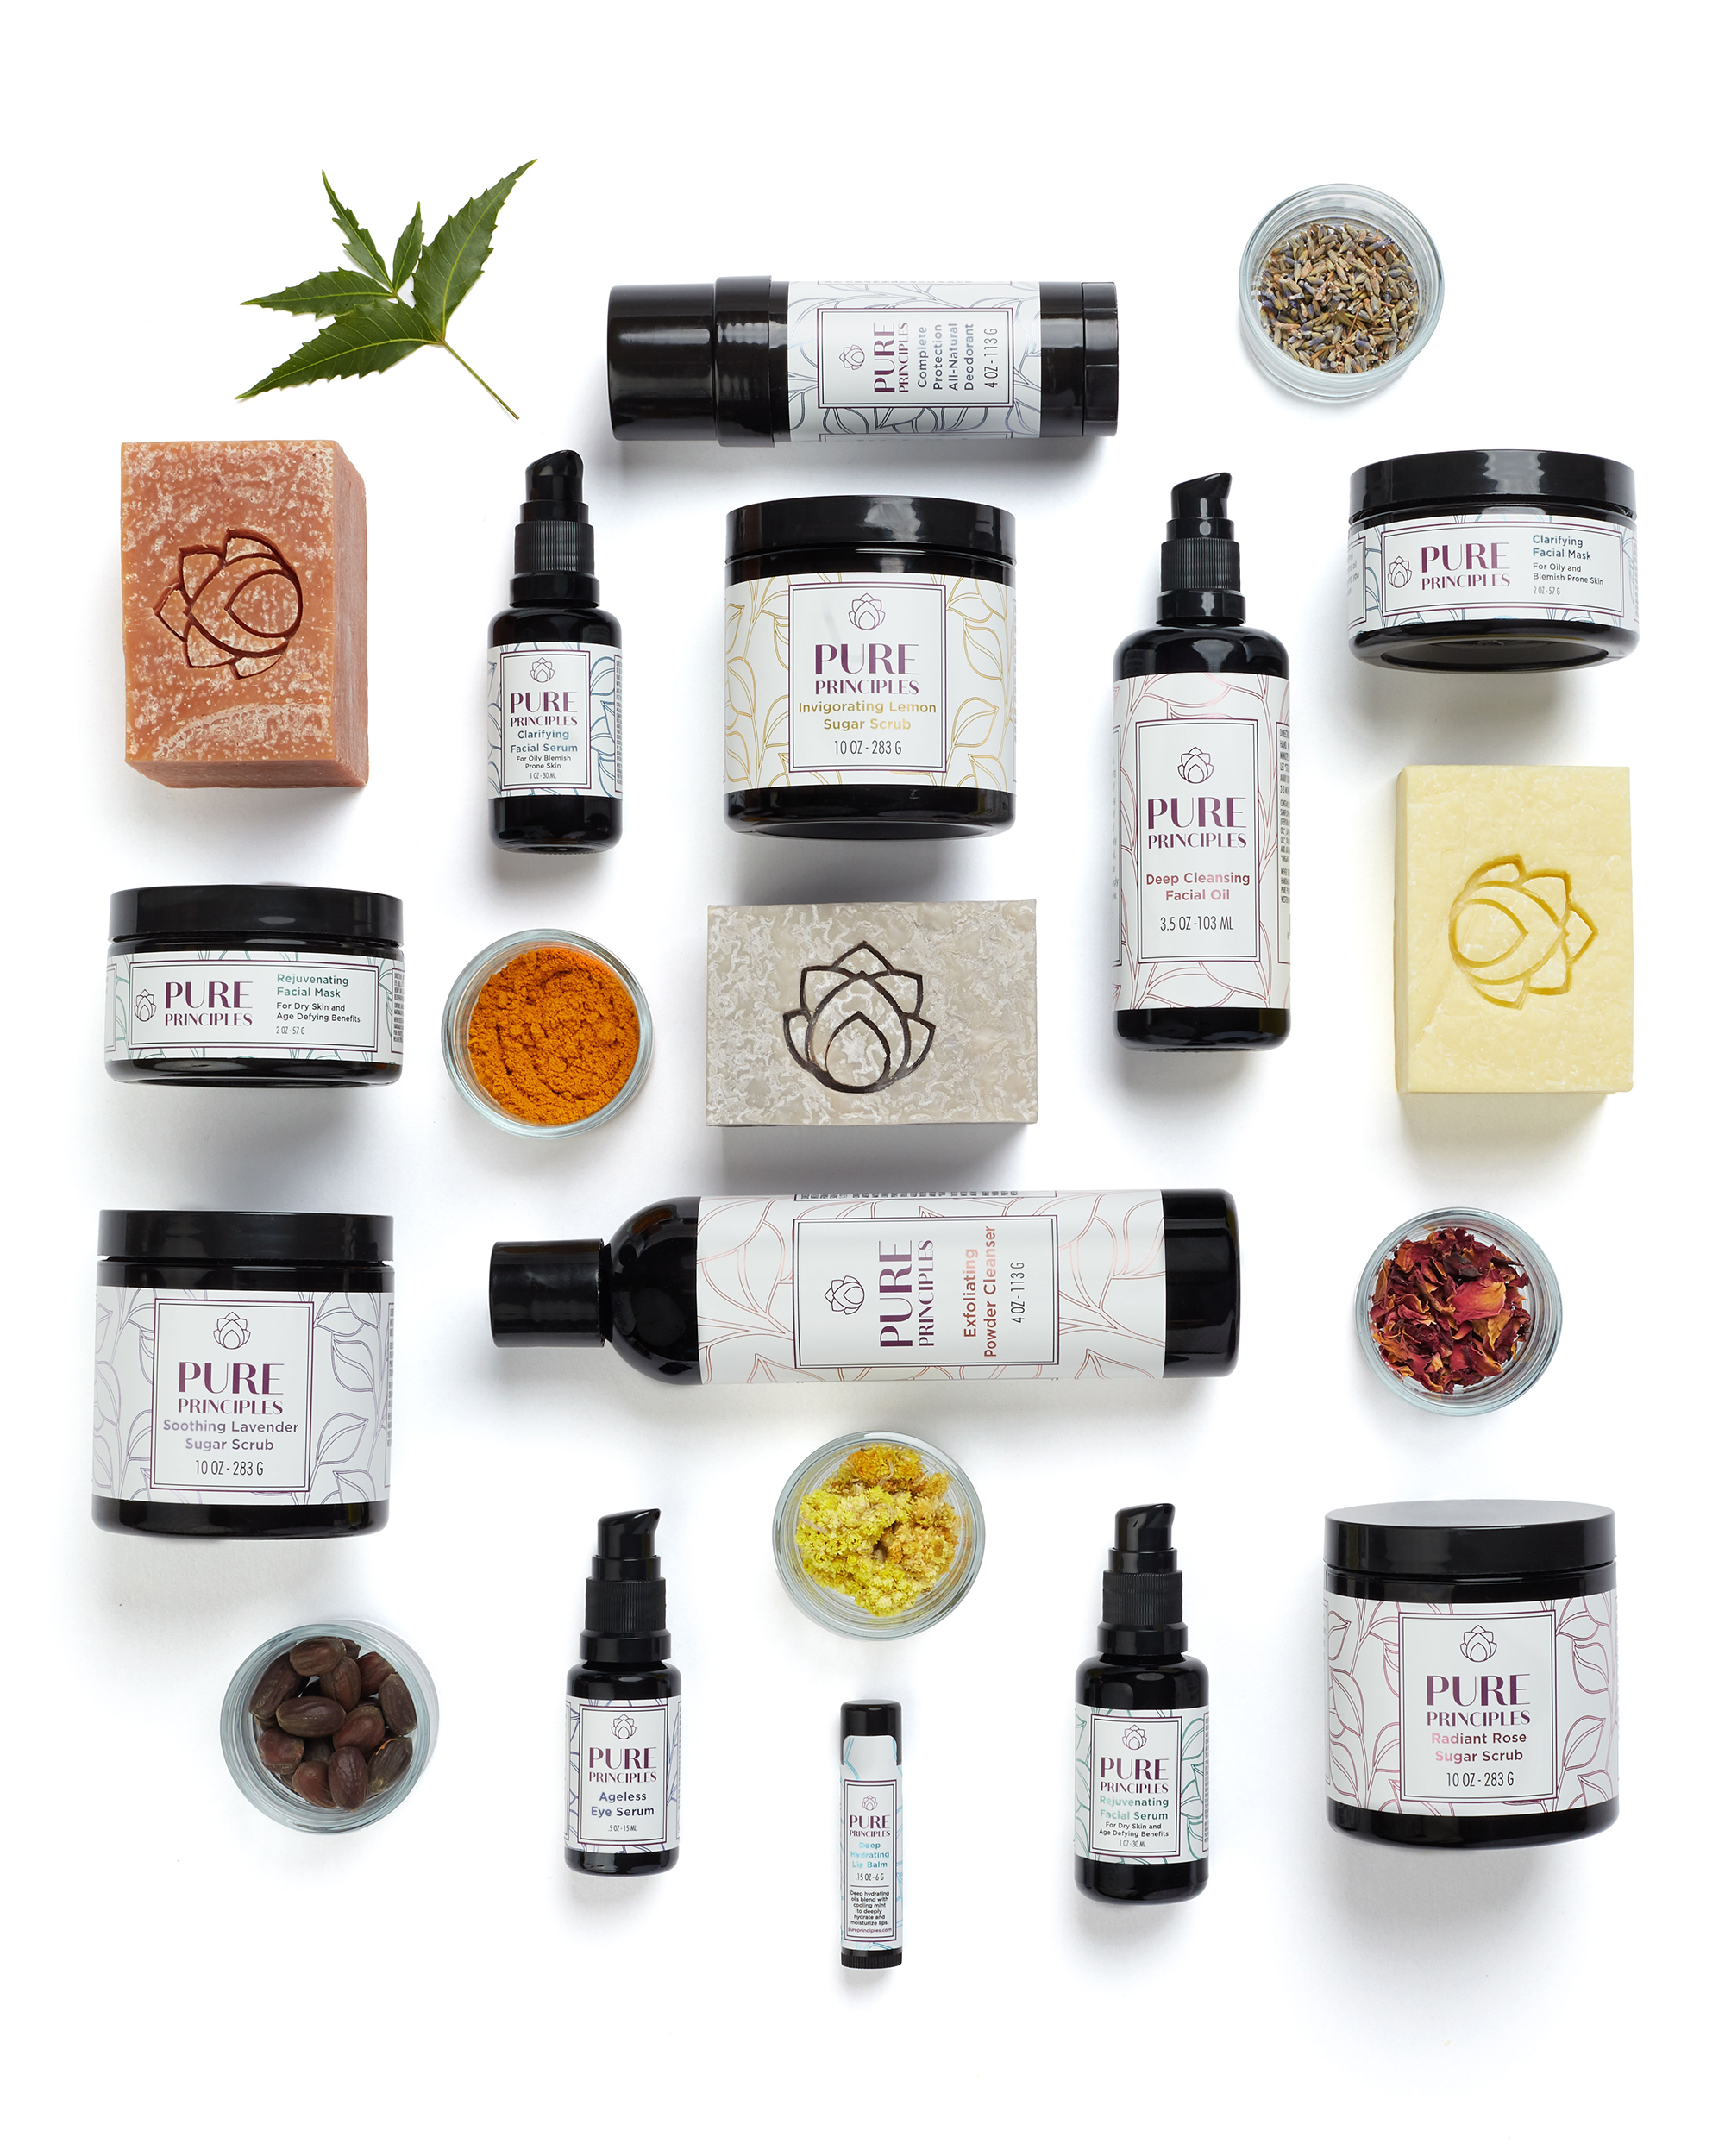 We begin in nature, not a laboratory - After sourcing the finest herbs, oils and botanicals that Mother Nature has to offer, we draw from the 5000-year-old science of Ayurveda to formulate effective, natural, chemical and preservative free skincare products.Our entire line was formulated by our founder, Cheryl McSherry, a NAMA certified Ayurvedic Practitioner and are hand crafted in micro-batches to ensure our customers receive the freshest, most potent products possible.